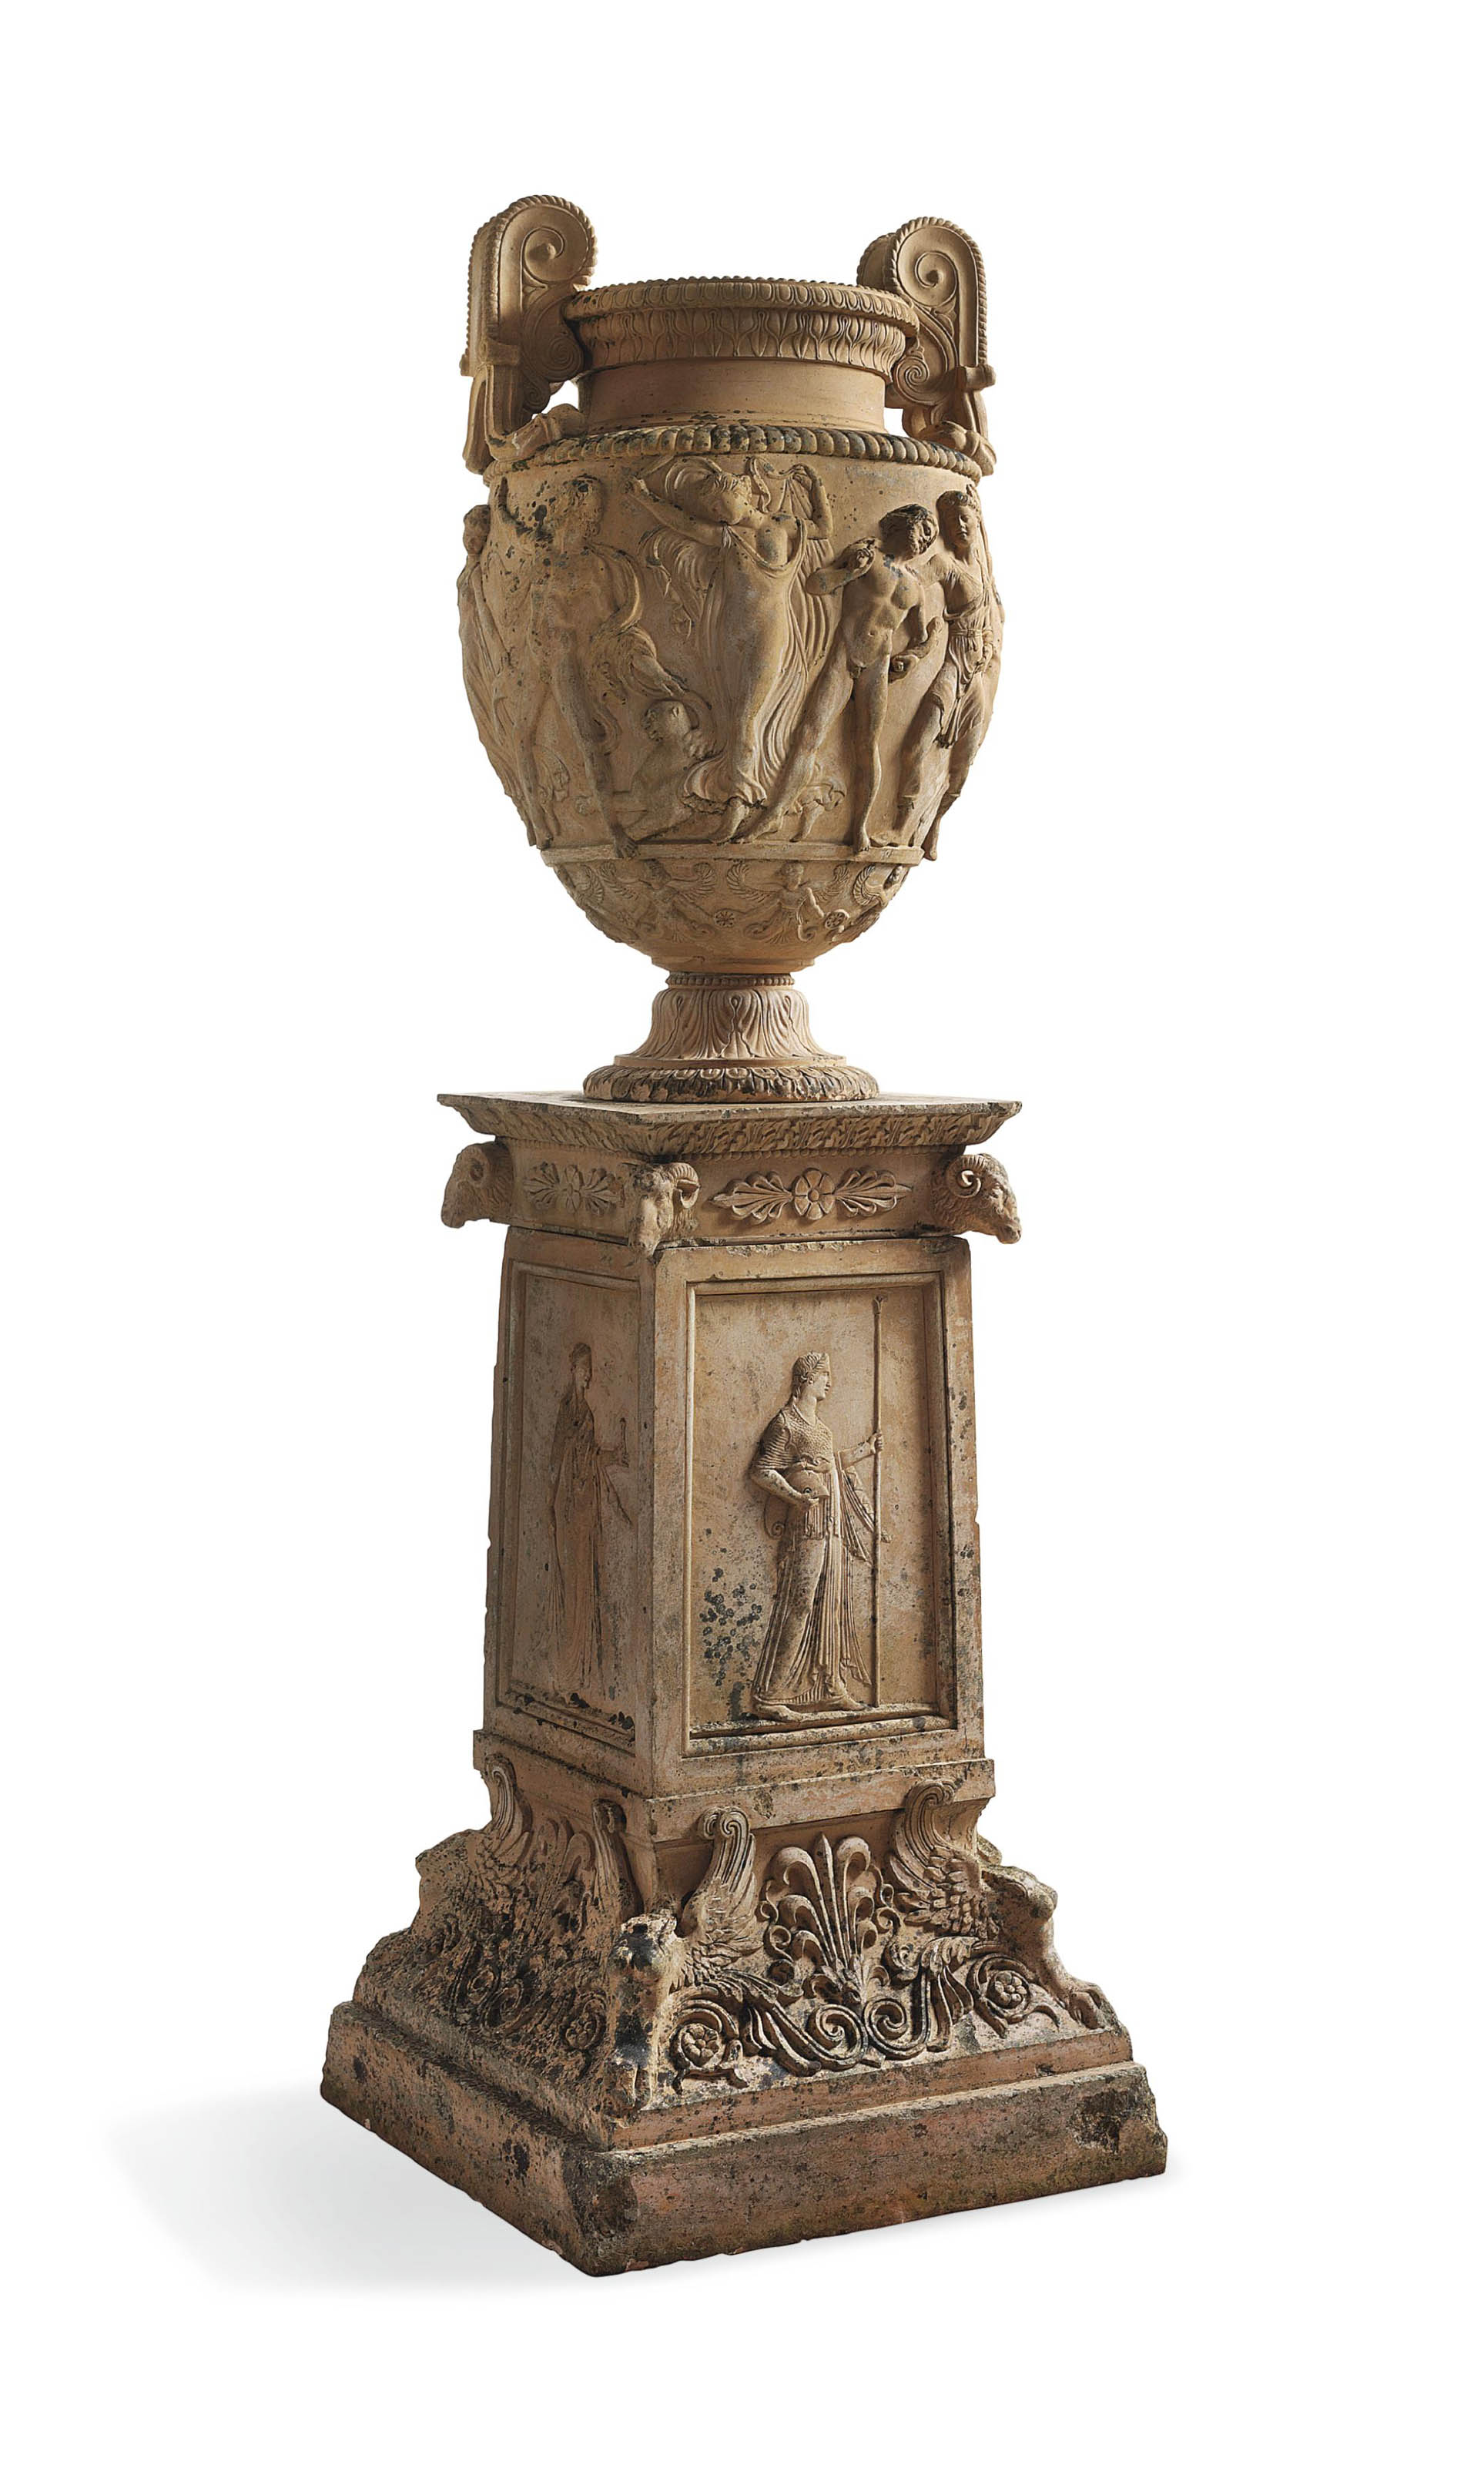 A VICTORIAN TERRACOTTA MODEL OF THE TOWNLEY VASE ON PEDESTAL